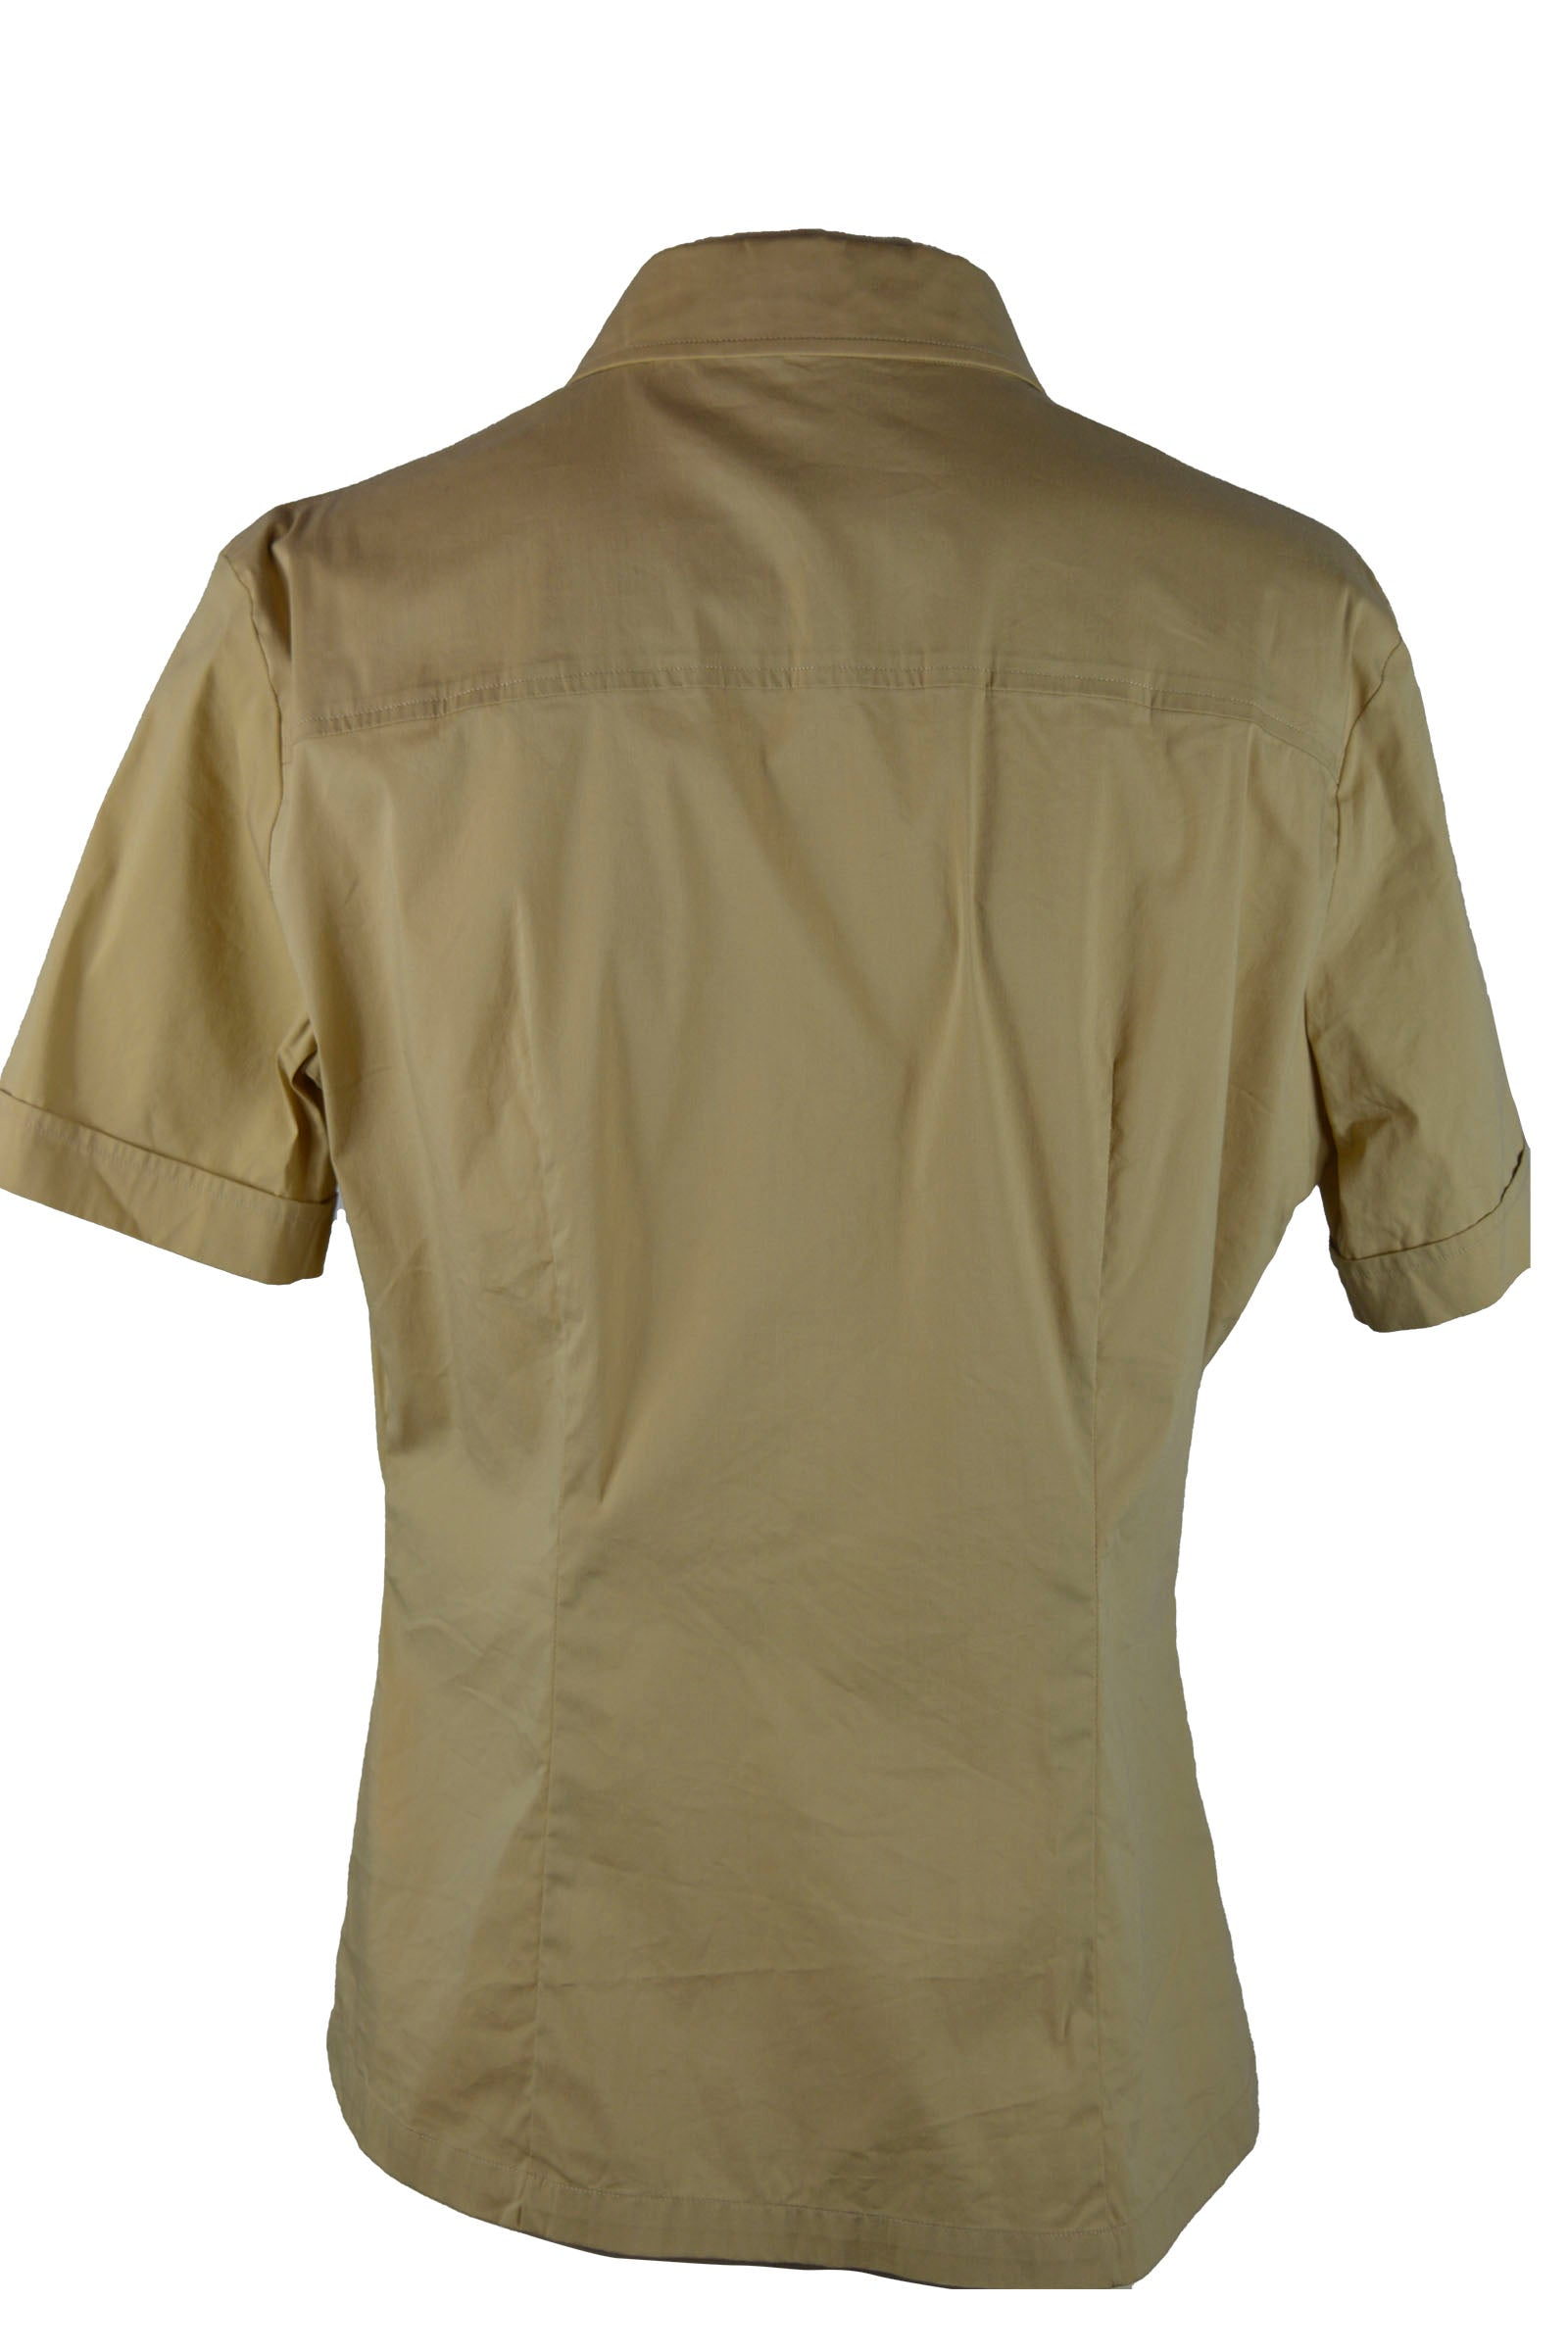 Burberry Beige Short Sleeved Shirt with Embroidered Pocket Size 40 (EU)